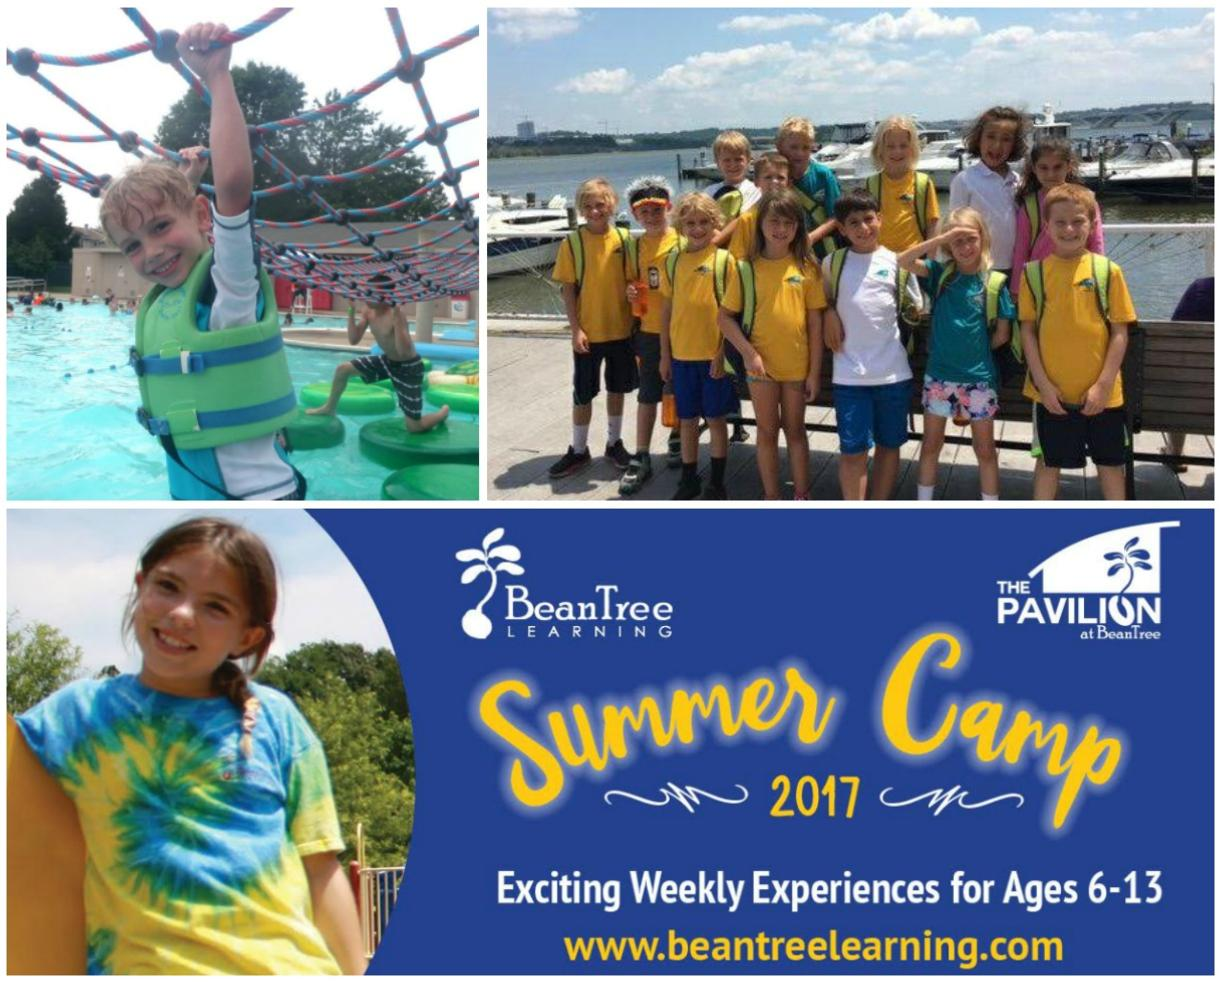 $325+ for The Pavilion at BeanTree Summer Camps for Ages 6 to 14 - Ashburn (32% Off)